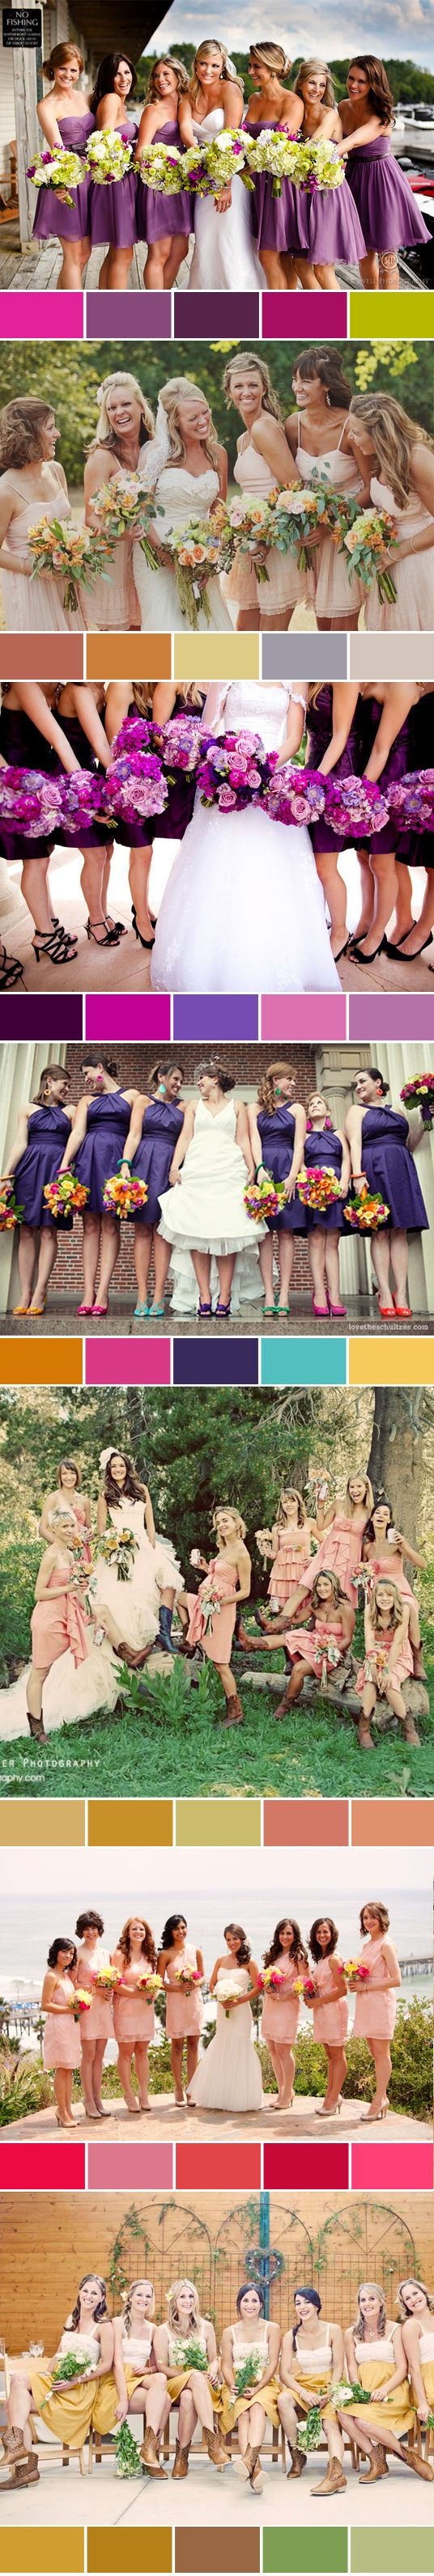 Great color palettes!